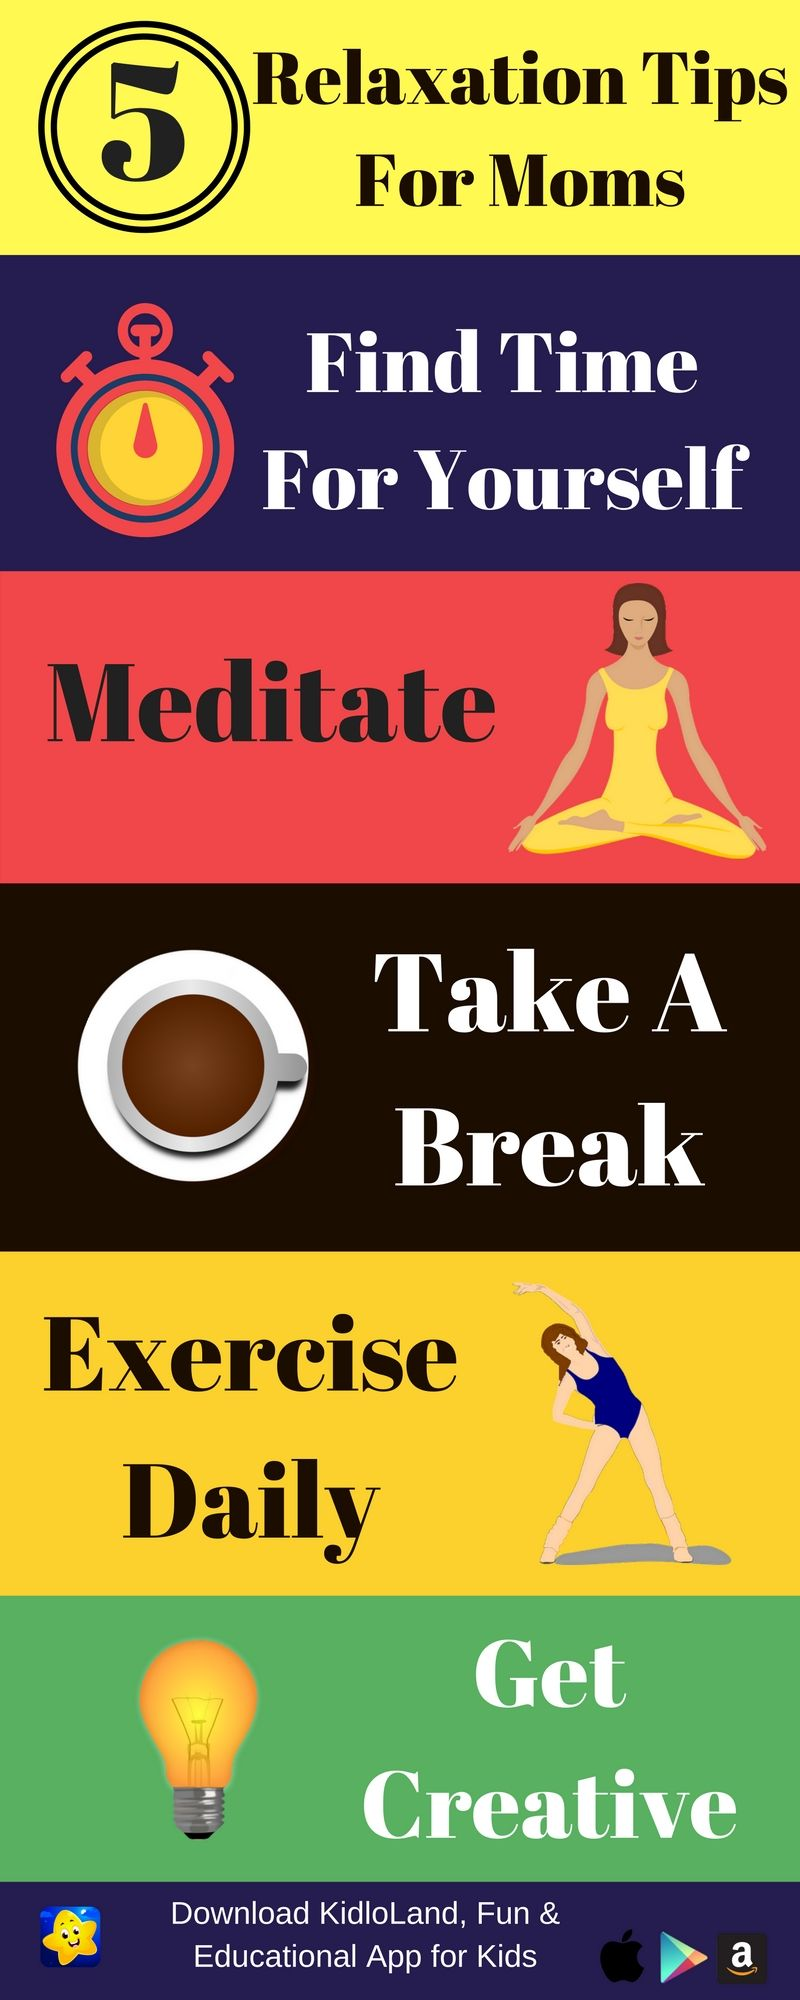 Moms! 5 Relaxation Tips To Make You StressFree Stress